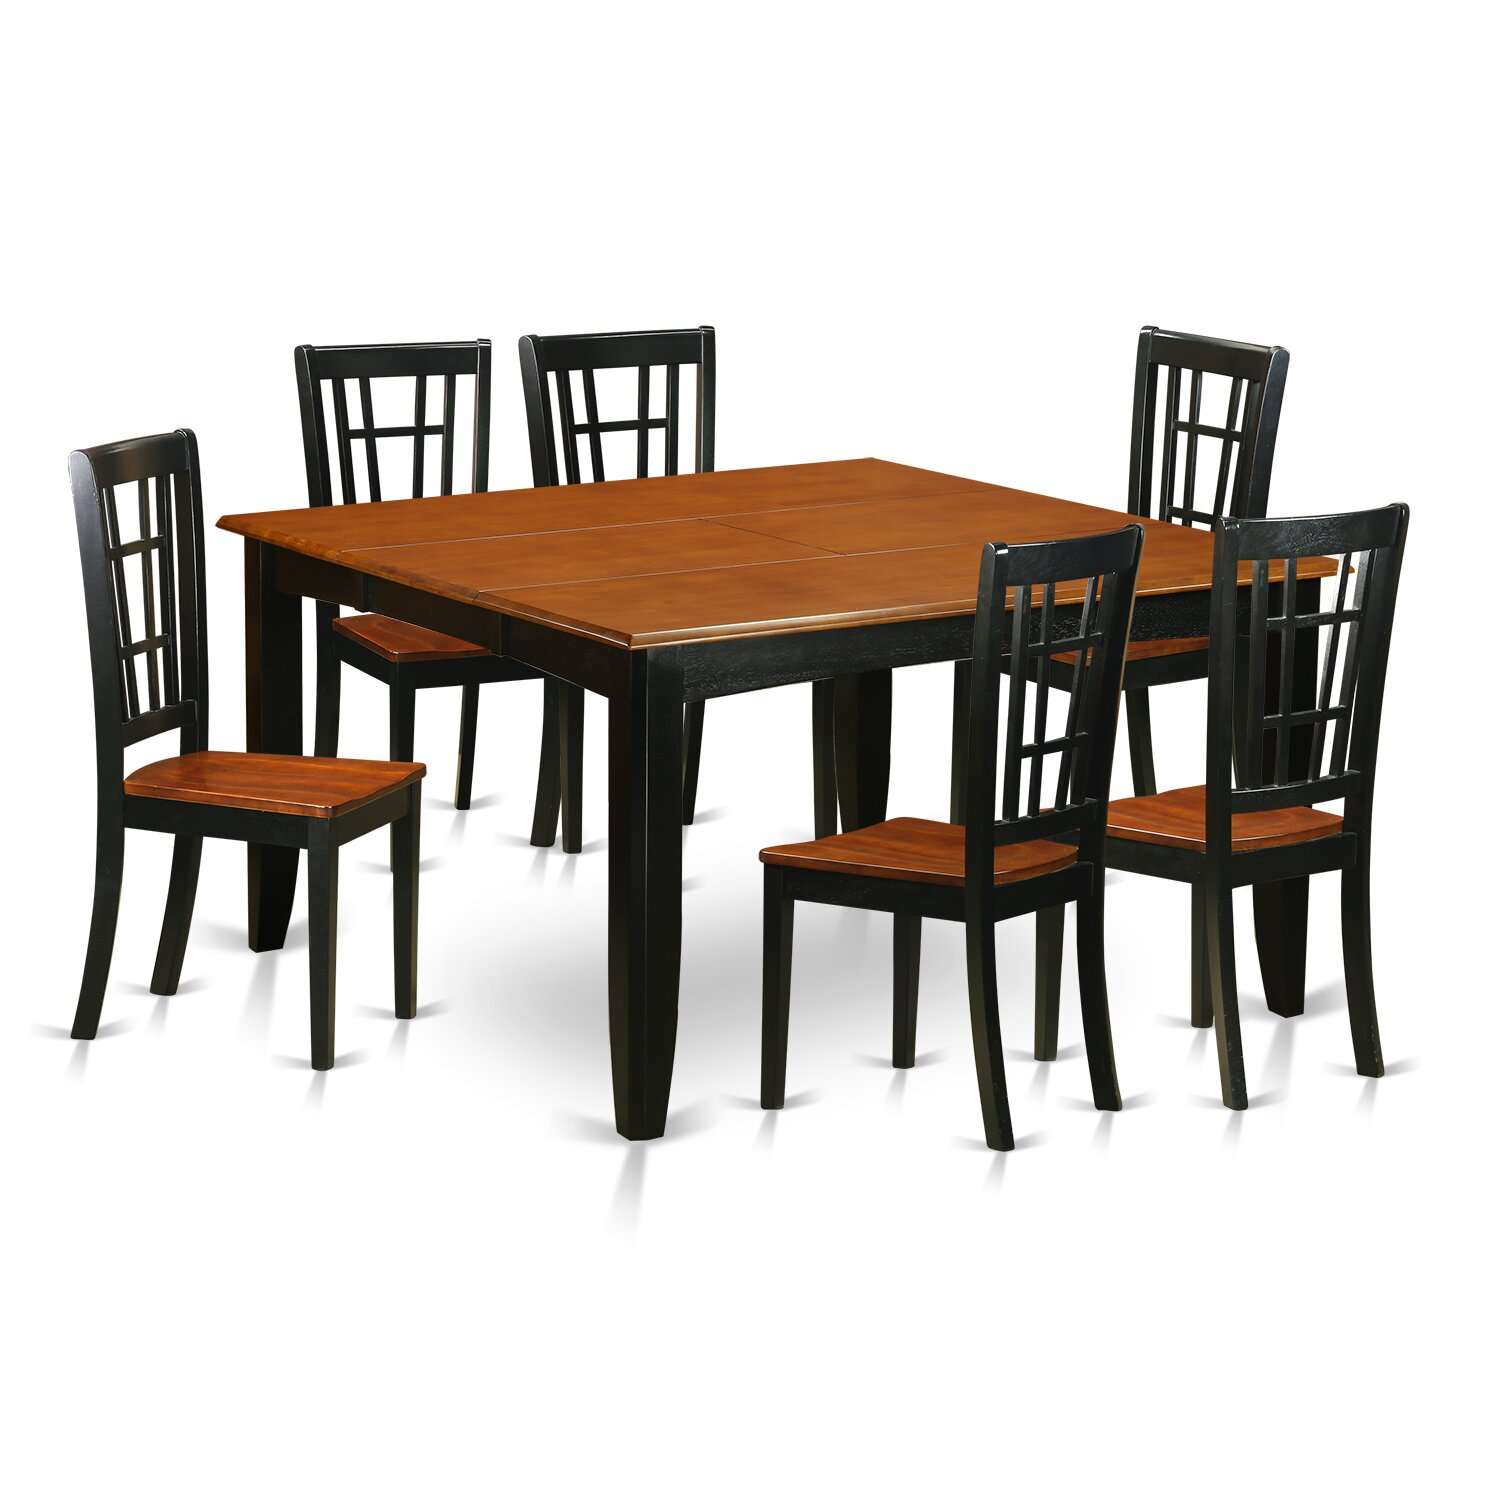 East west parfait 7 piece dining set wayfair for 7 piece dining set